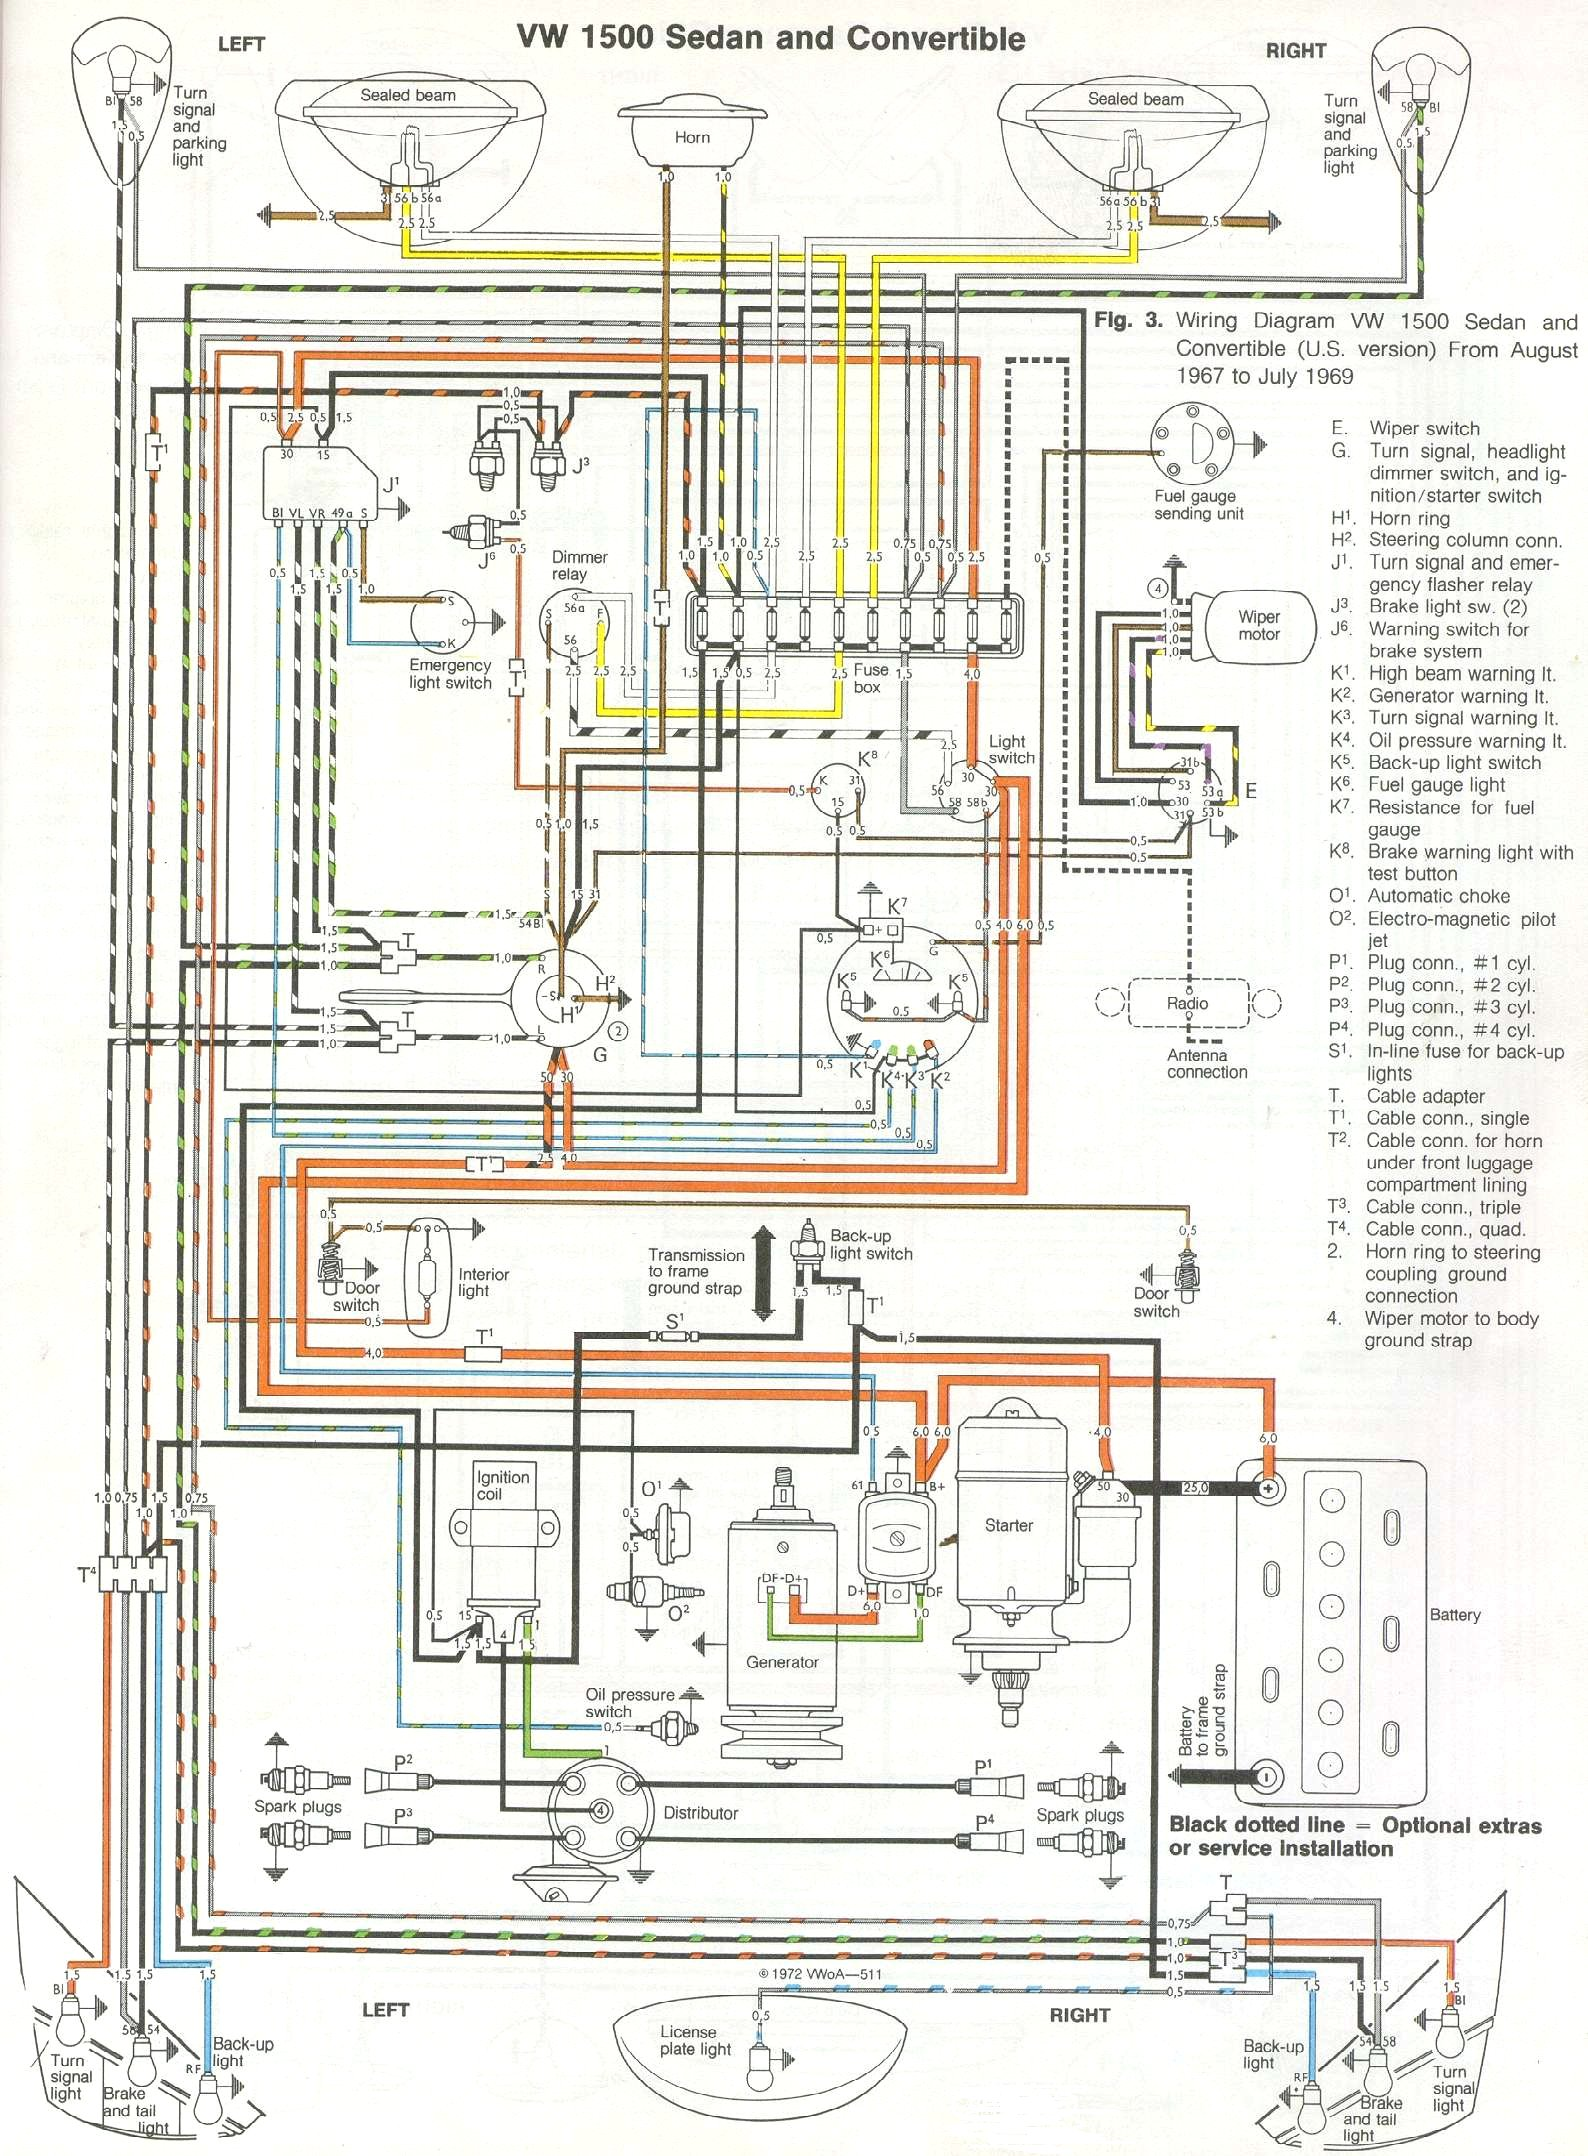 2000 beetle wiring diagram wiring diagram document guide 1999 VW Beetle Fuse Diagram 2000 beetle wiring diagram online wiring diagram 2001 passat wiring diagram 2000 beetle wiring diagram